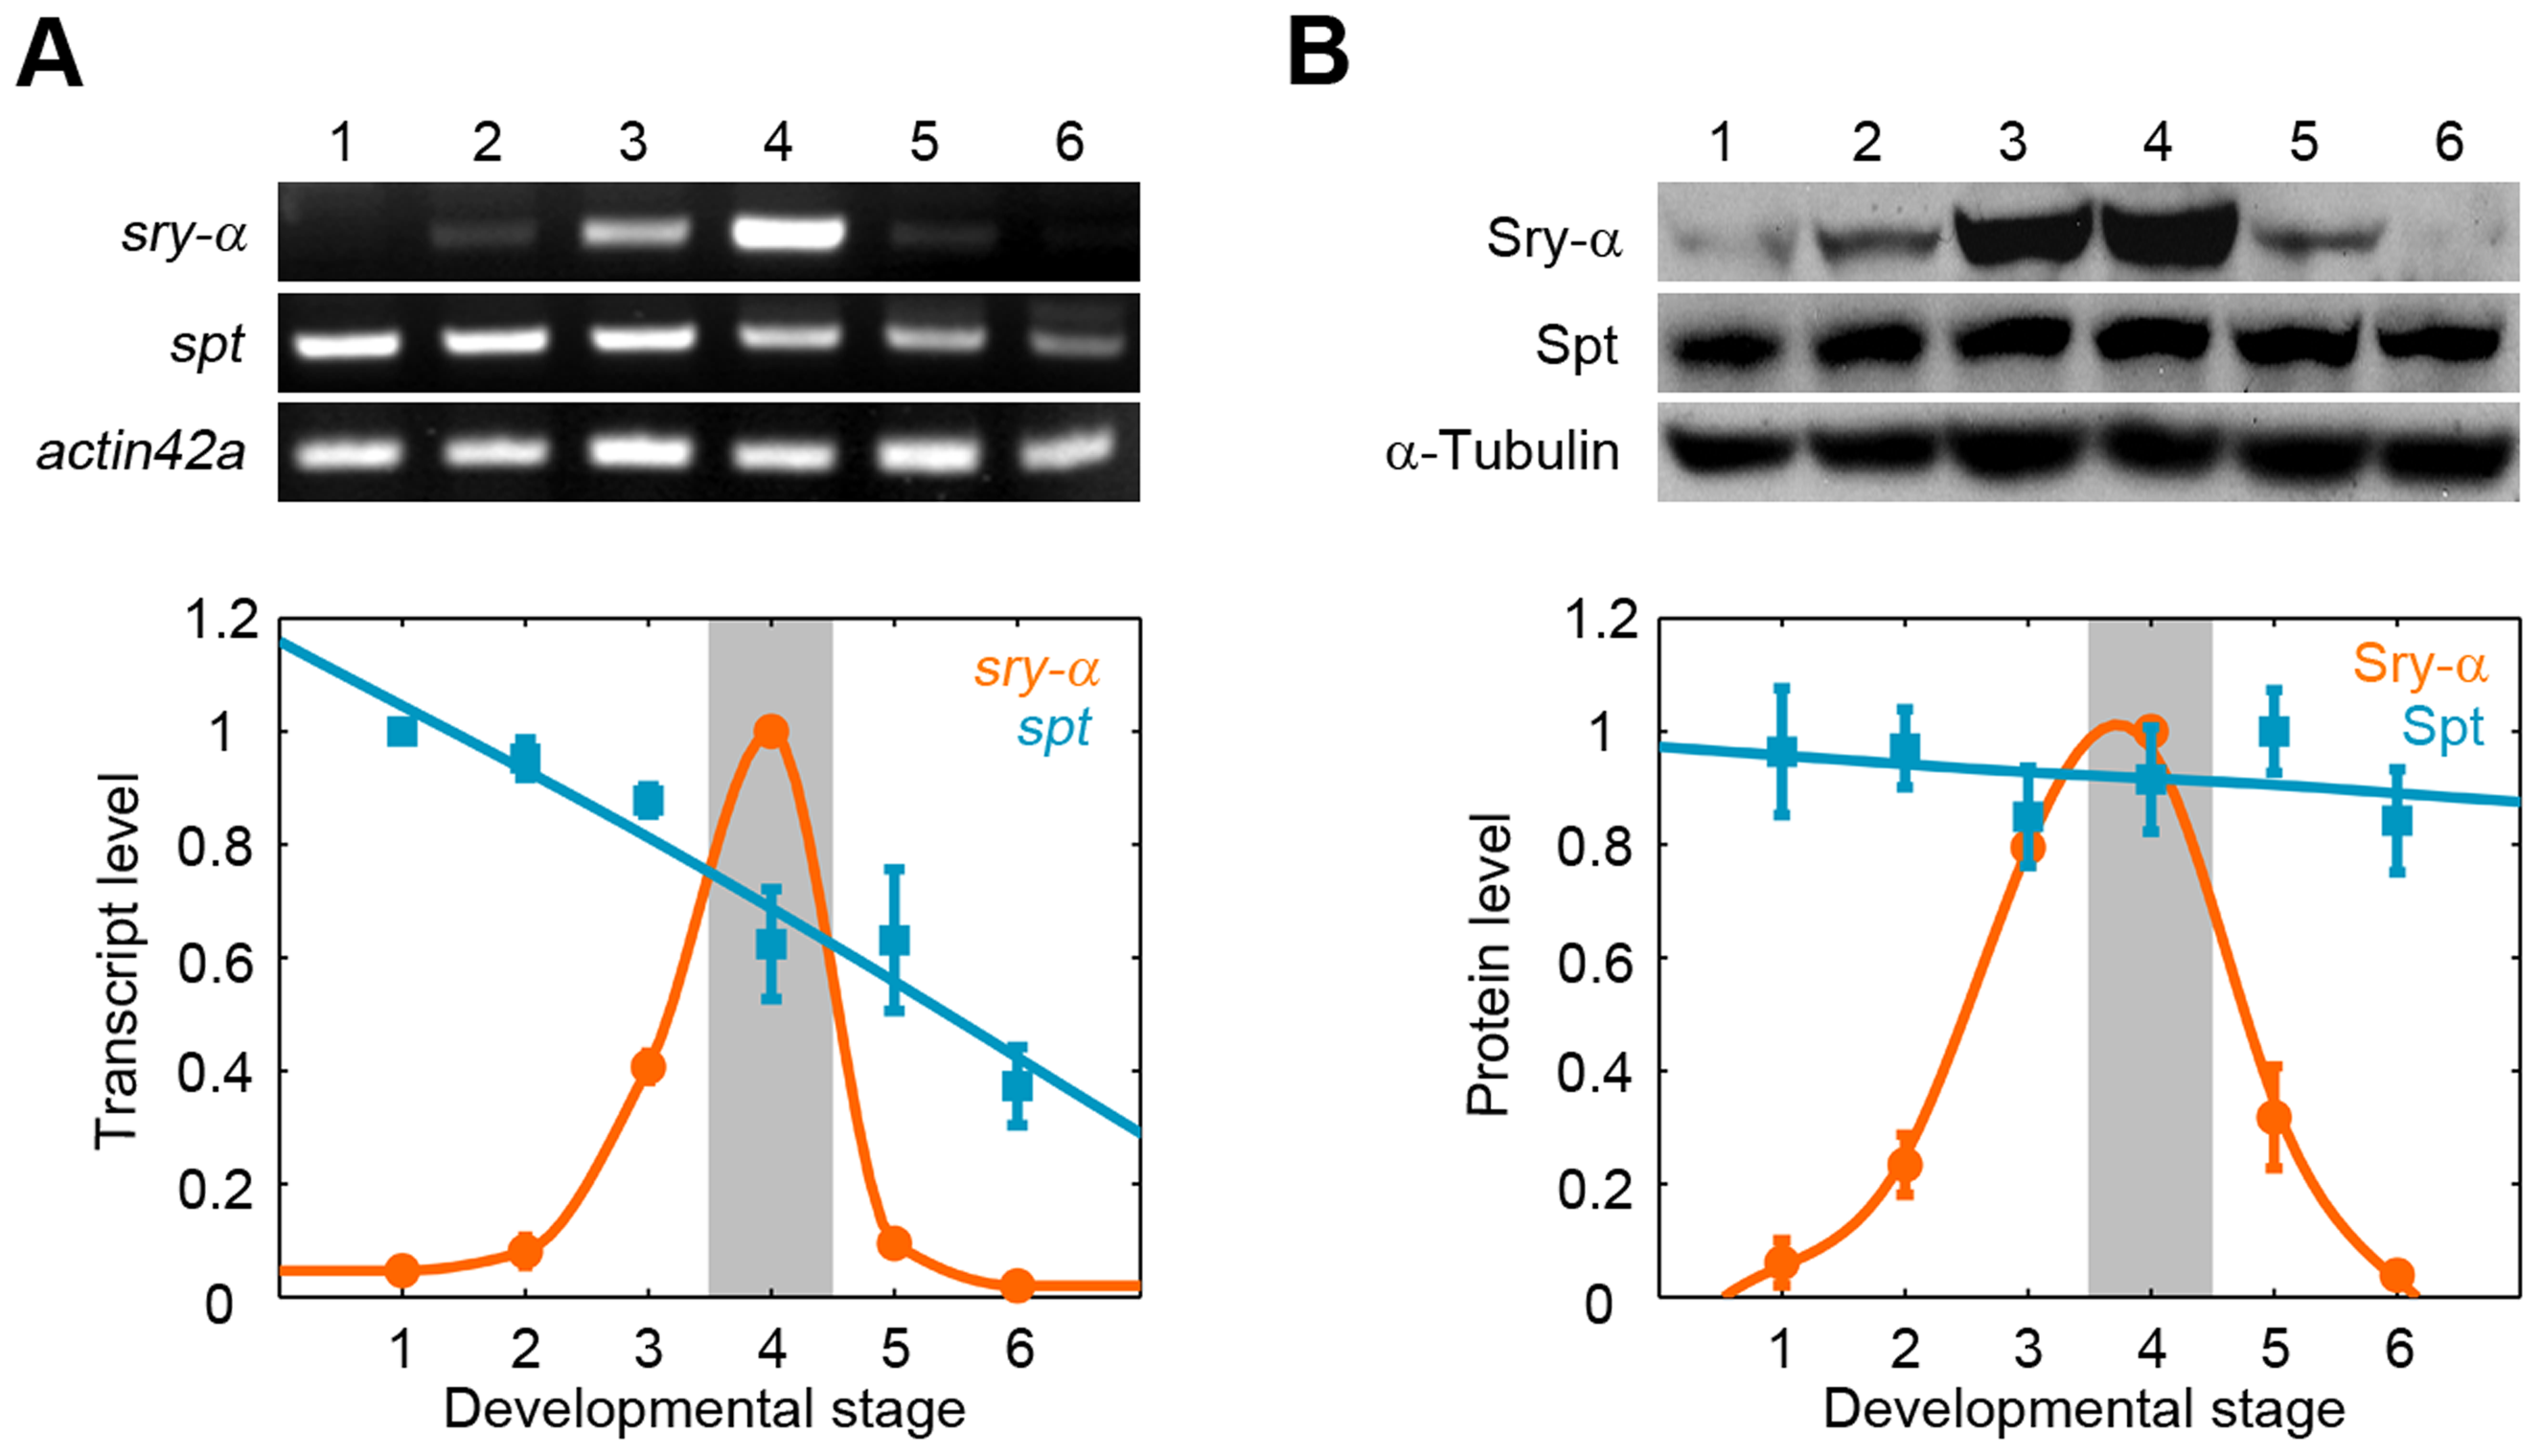 Spt is maternally provided, while Sry-α is zygotically expressed in a pulse for cellularization.